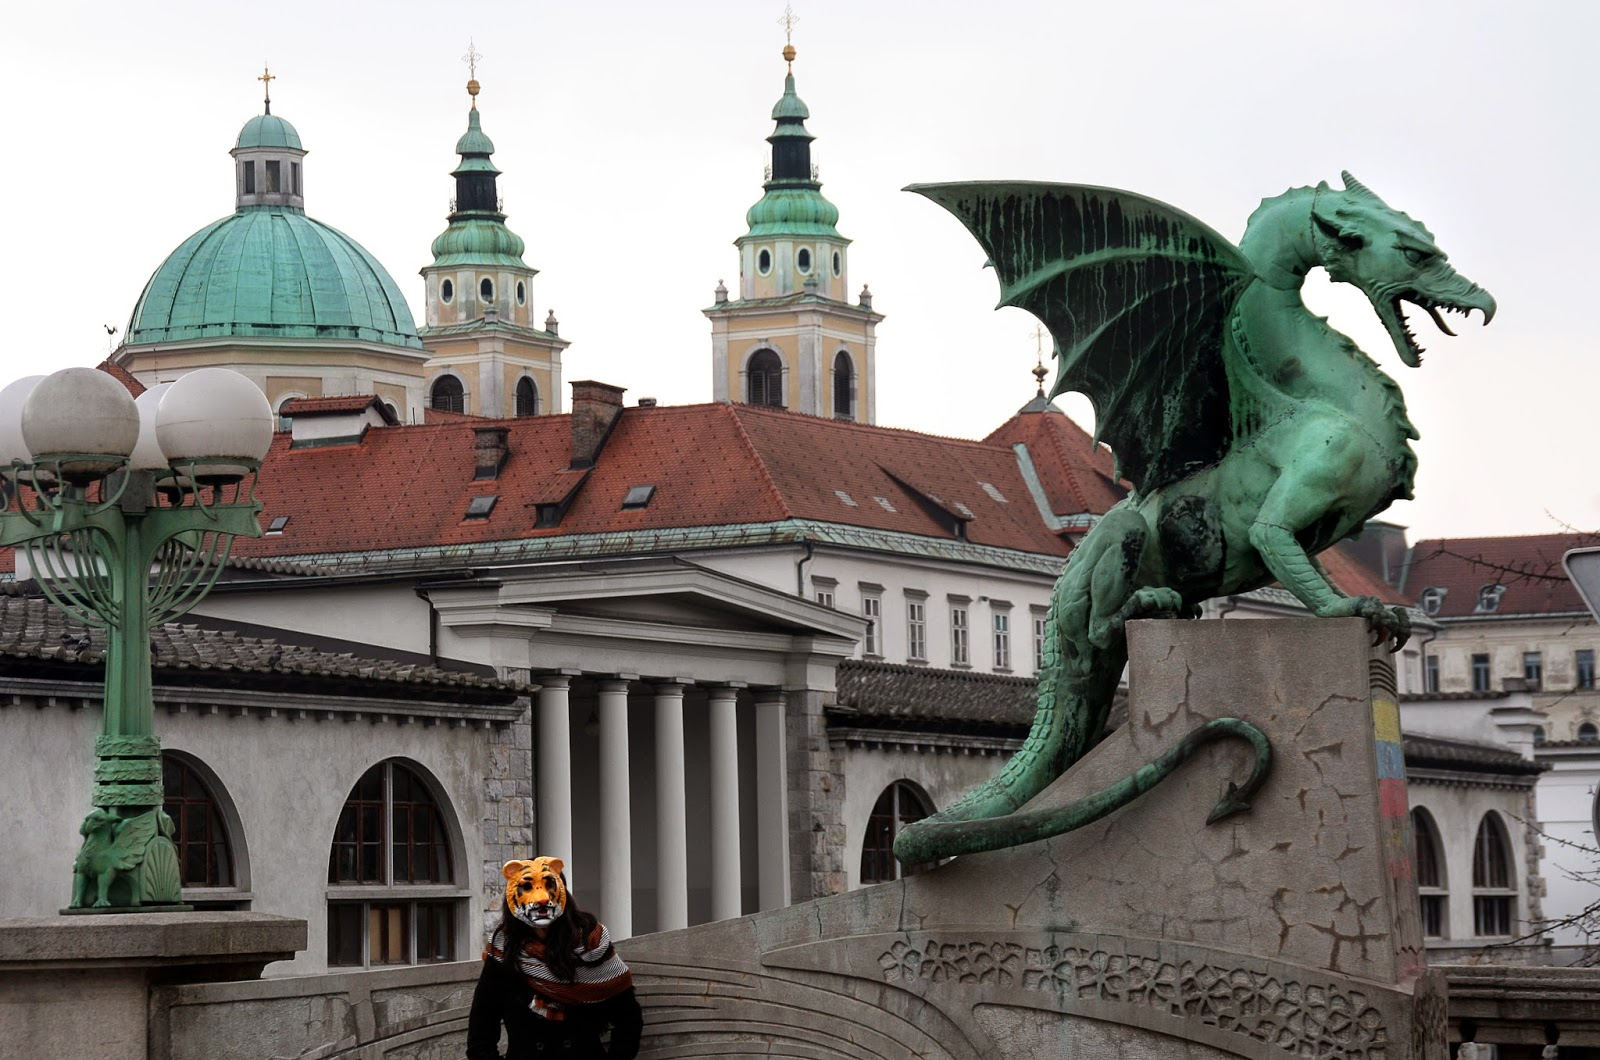 http://whenaudreymetdarcy.blogspot.com.es/2015/03/ljubljana-city-of-dragons.html